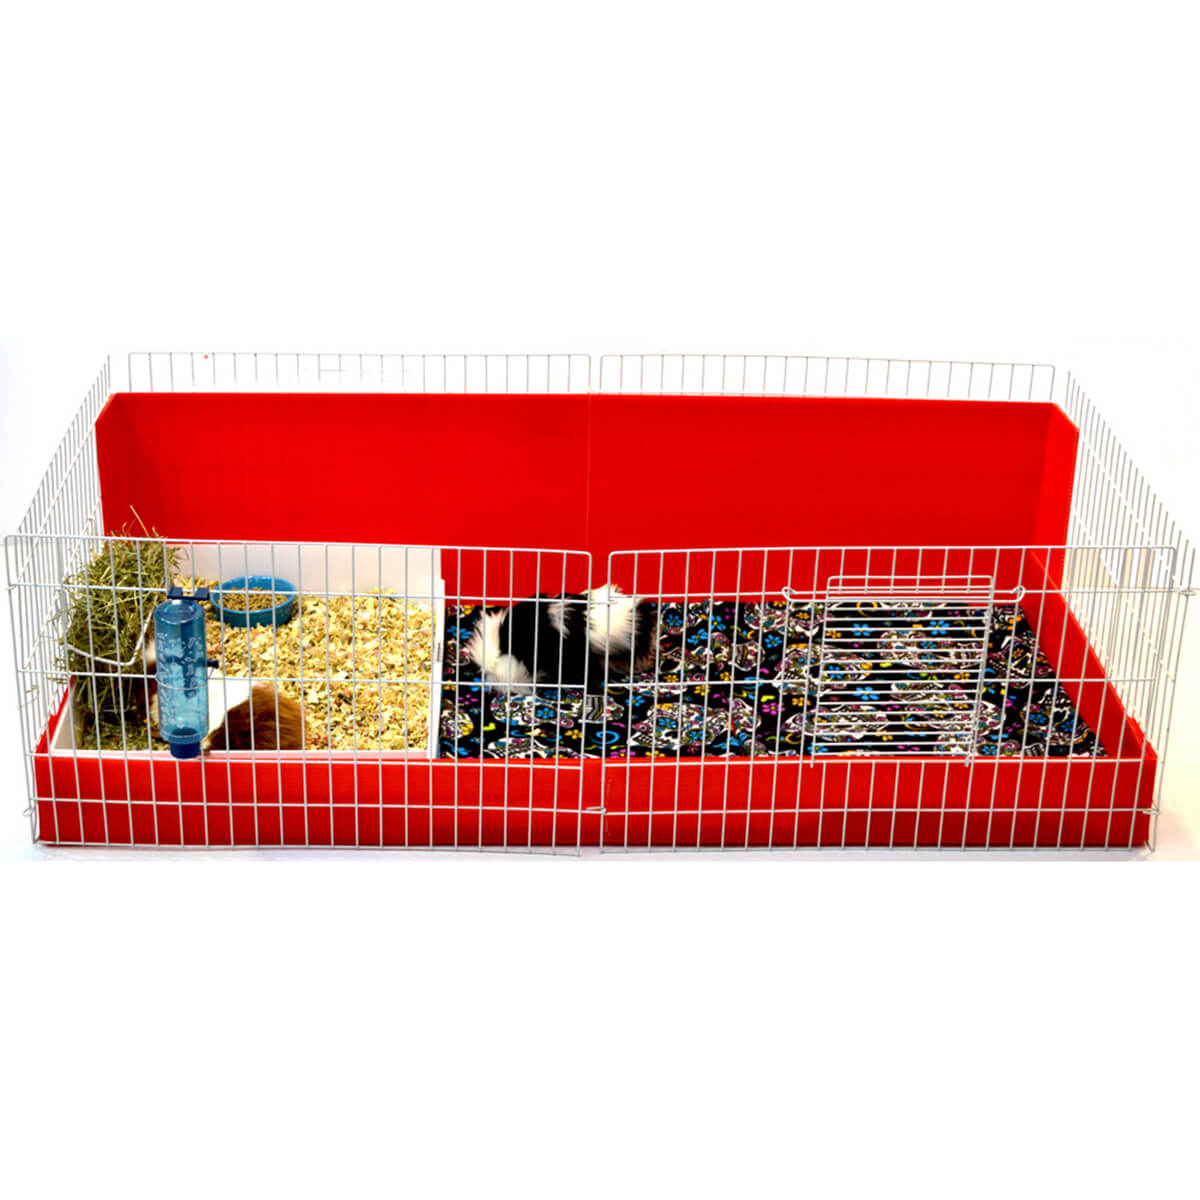 Midwest diner a kitchen insert for the midwest guinea for Coroplast guinea pig cage for sale